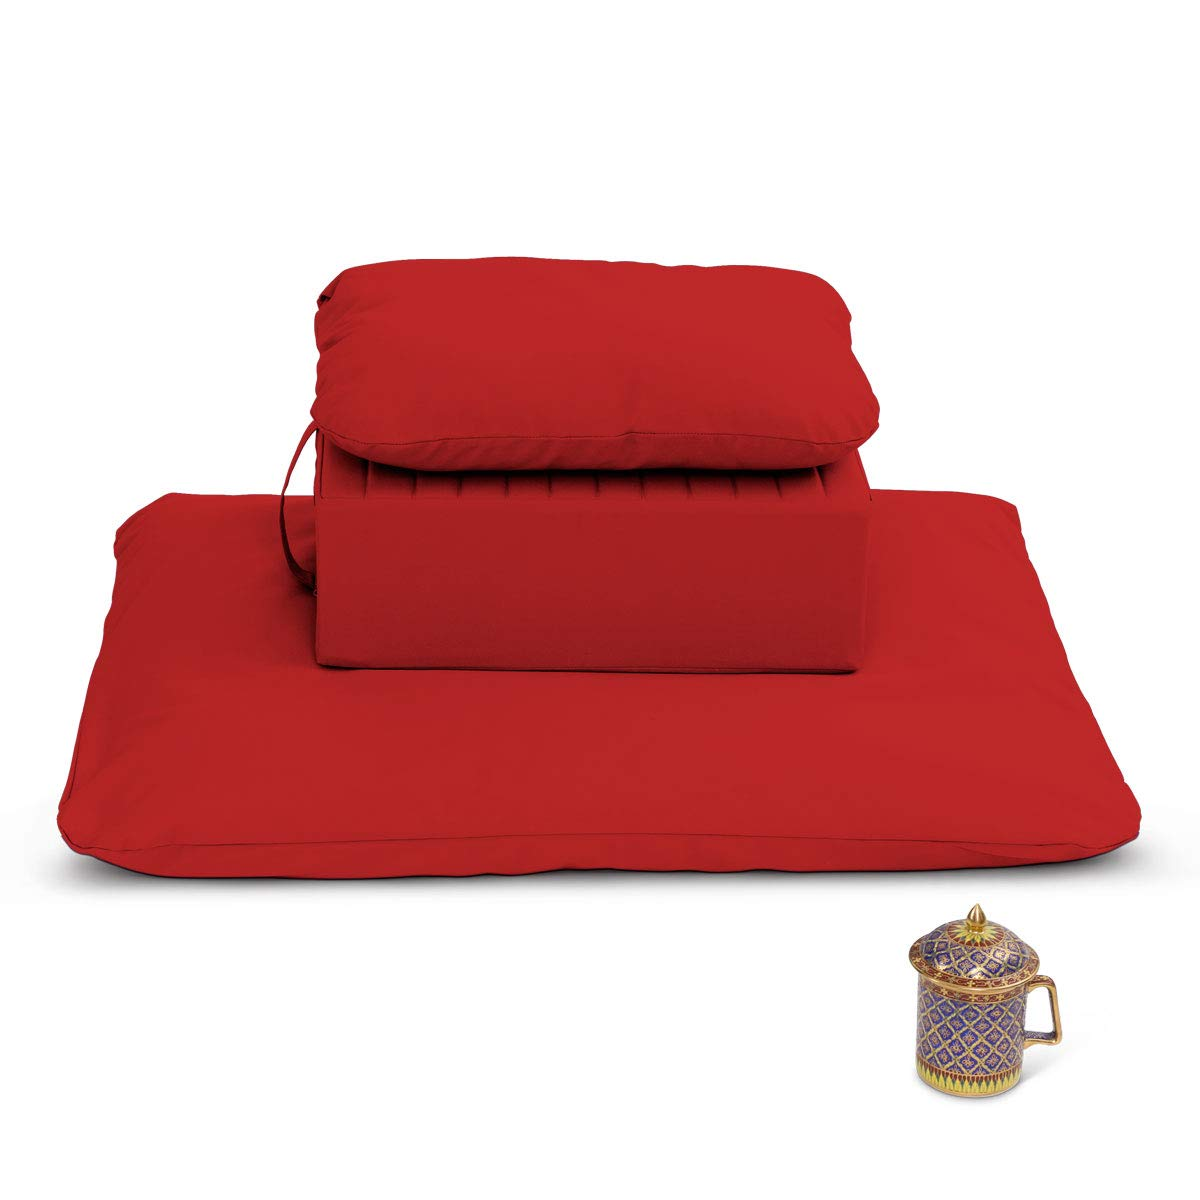 Samadhi Cushions Gomden Meditation Cushion